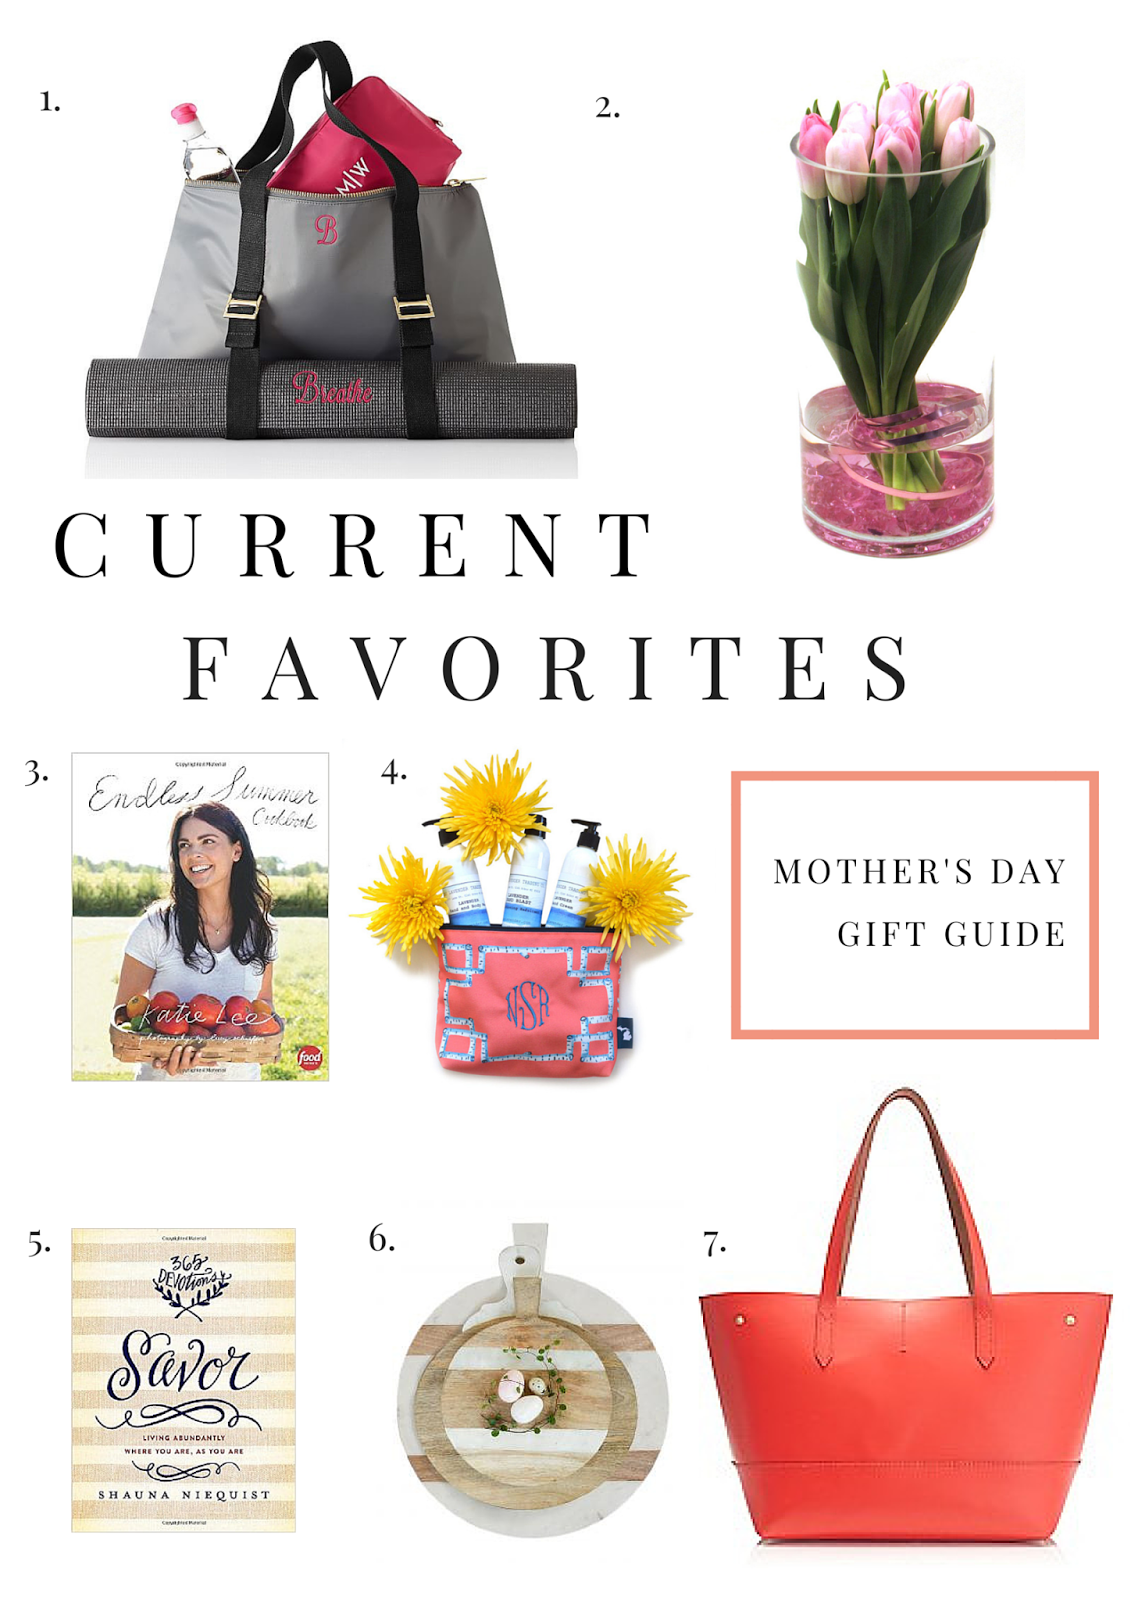 Mother's Day, Gifts, Fashion, Books, Flowers